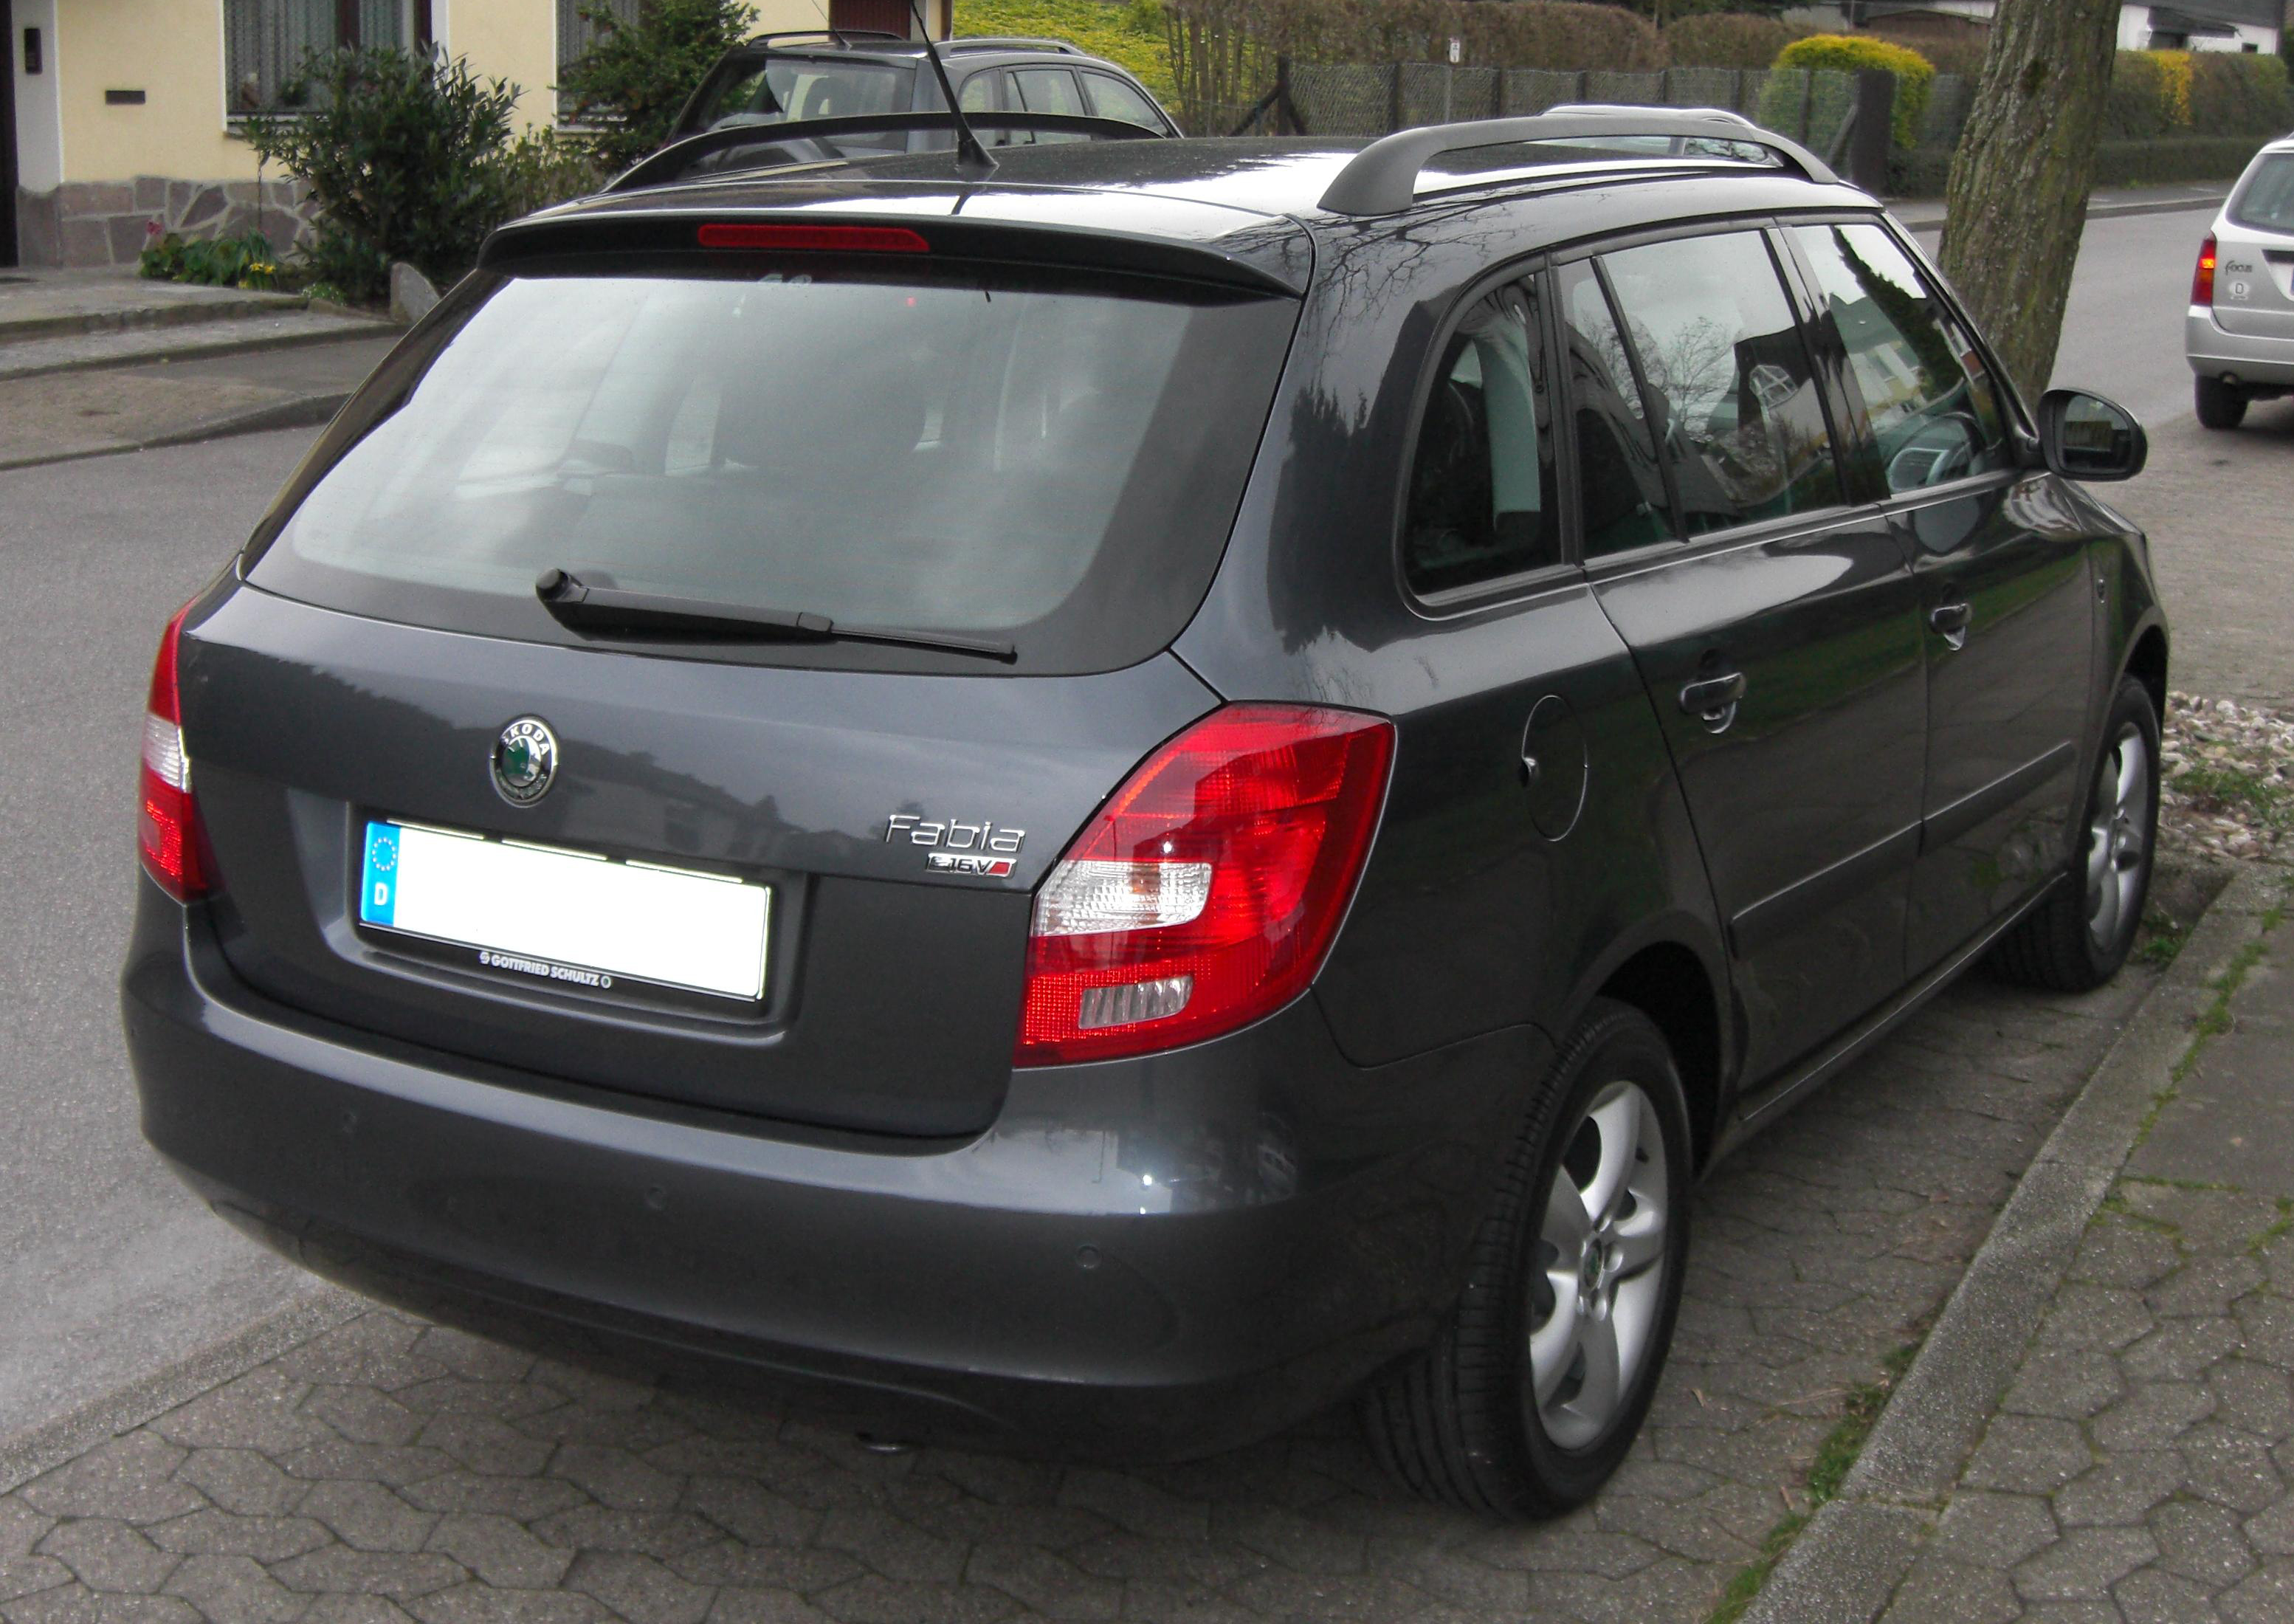 2010 skoda fabia ii pictures information and specs auto. Black Bedroom Furniture Sets. Home Design Ideas